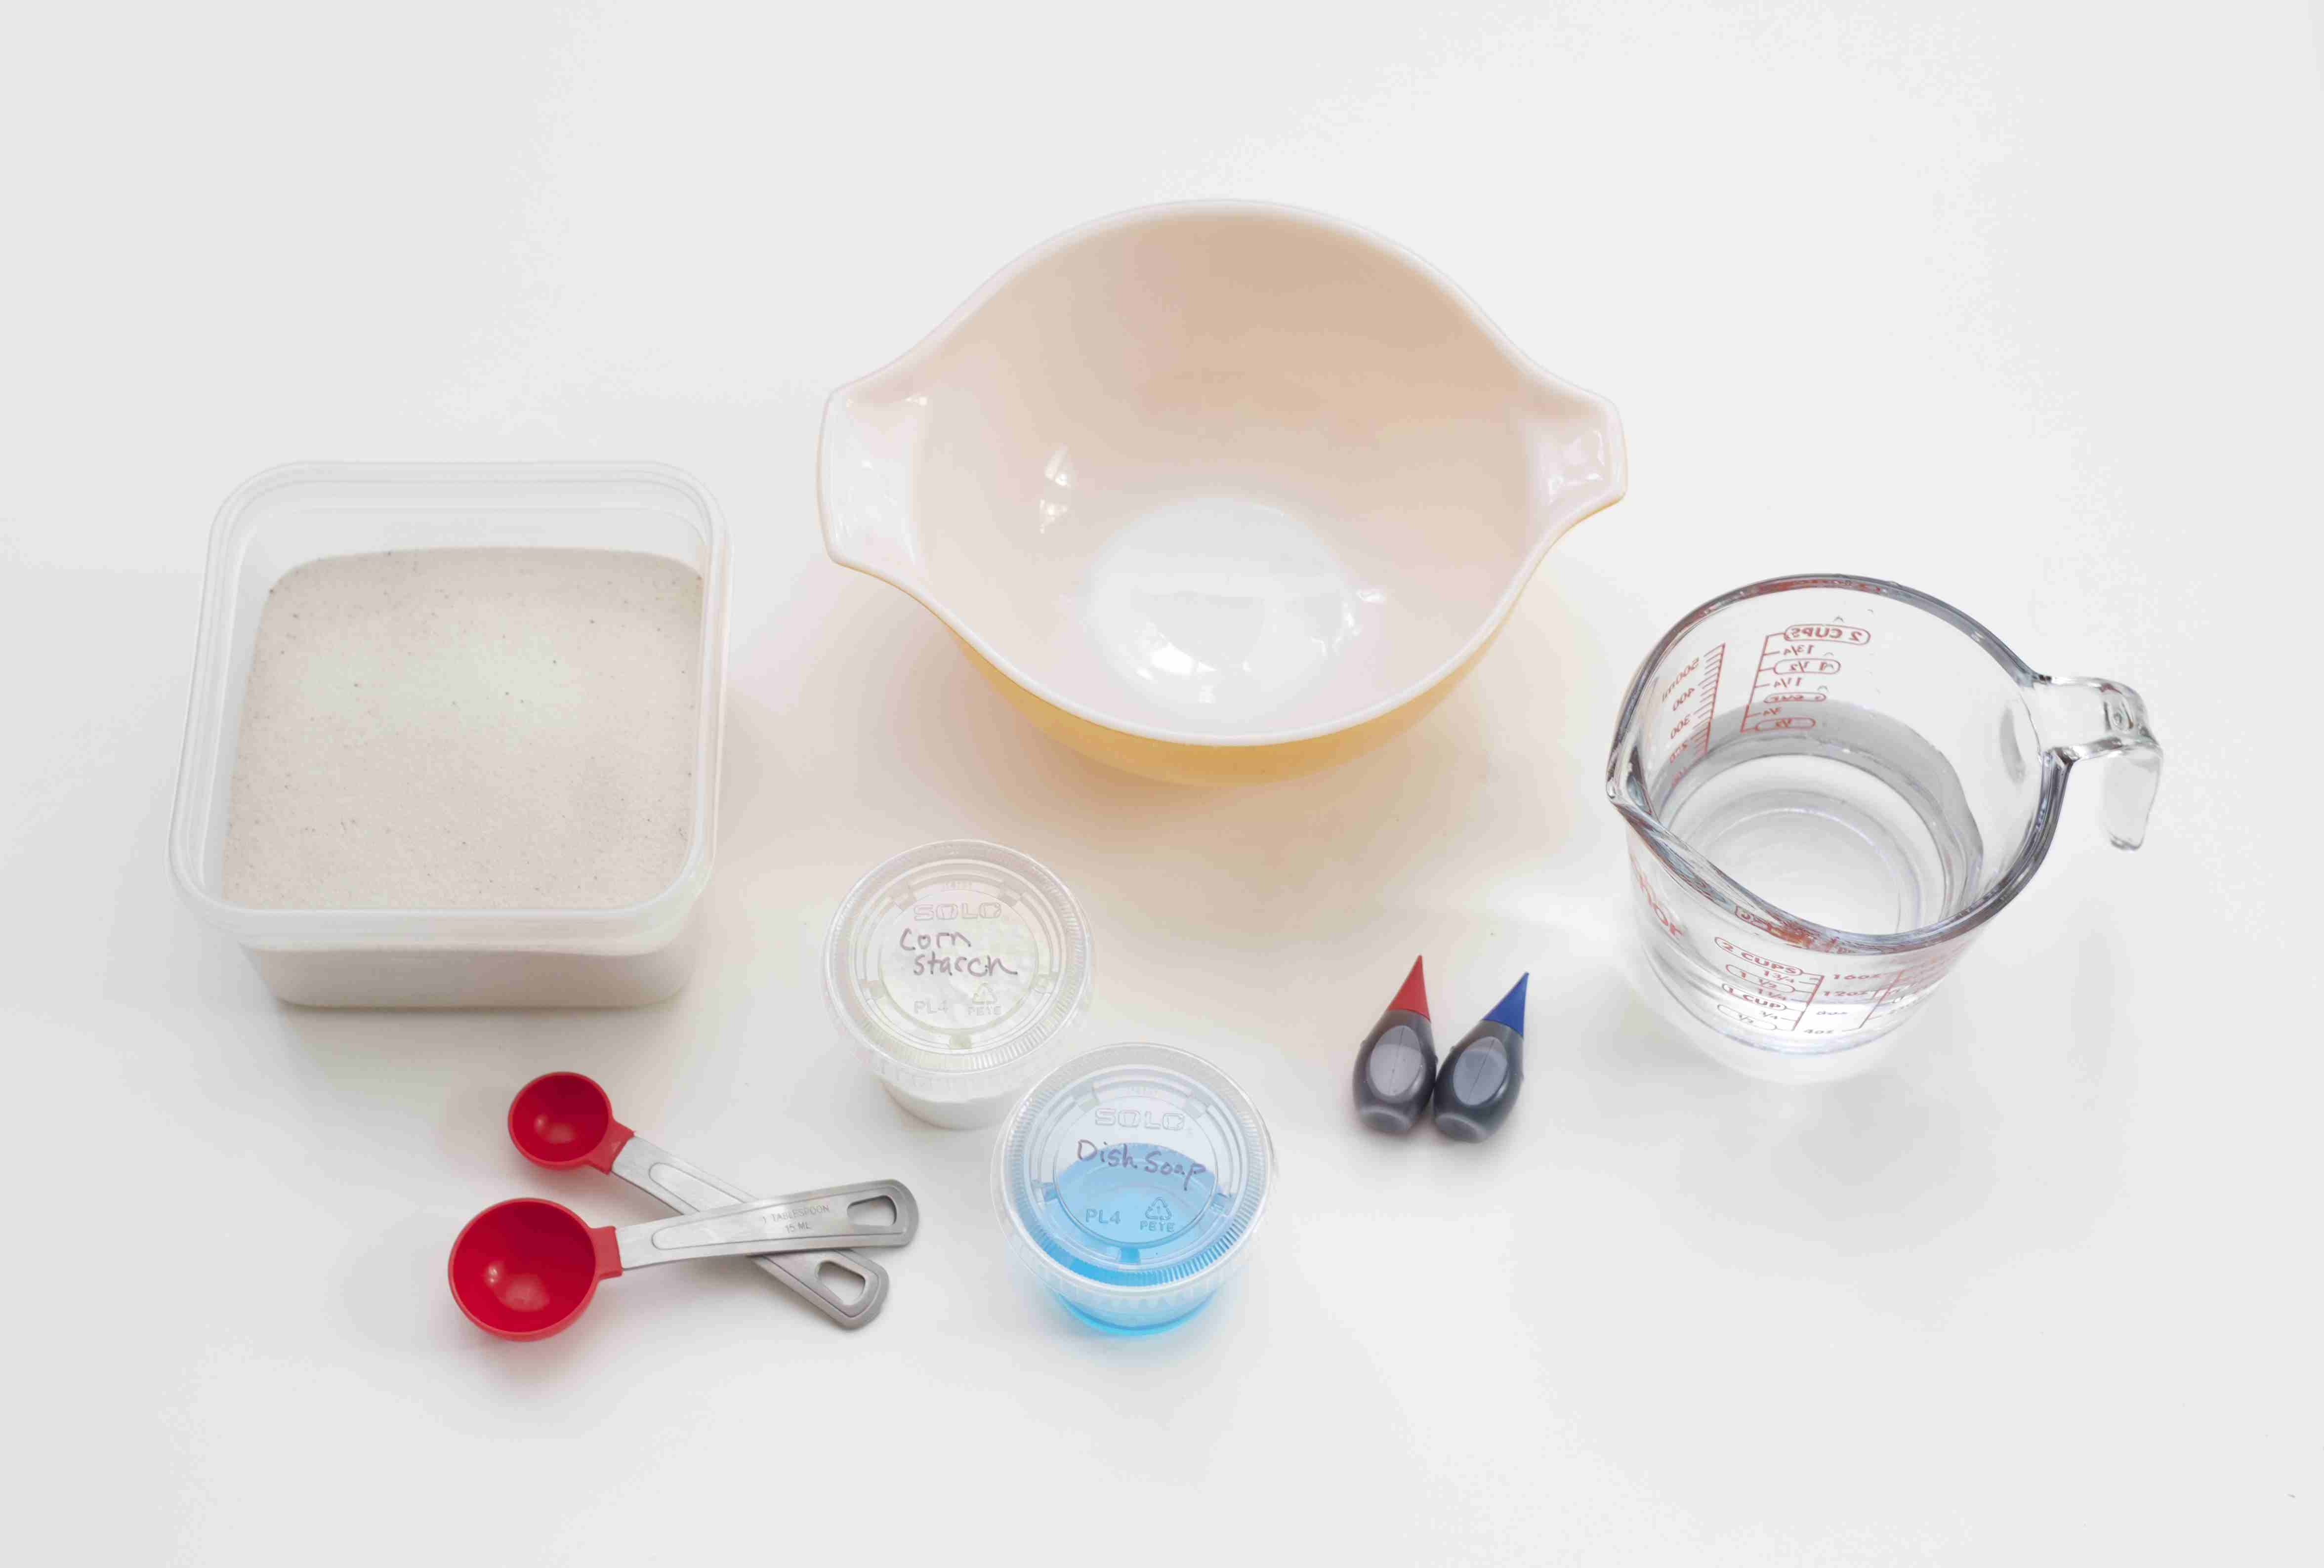 Measuring cups and ingredients gathered together